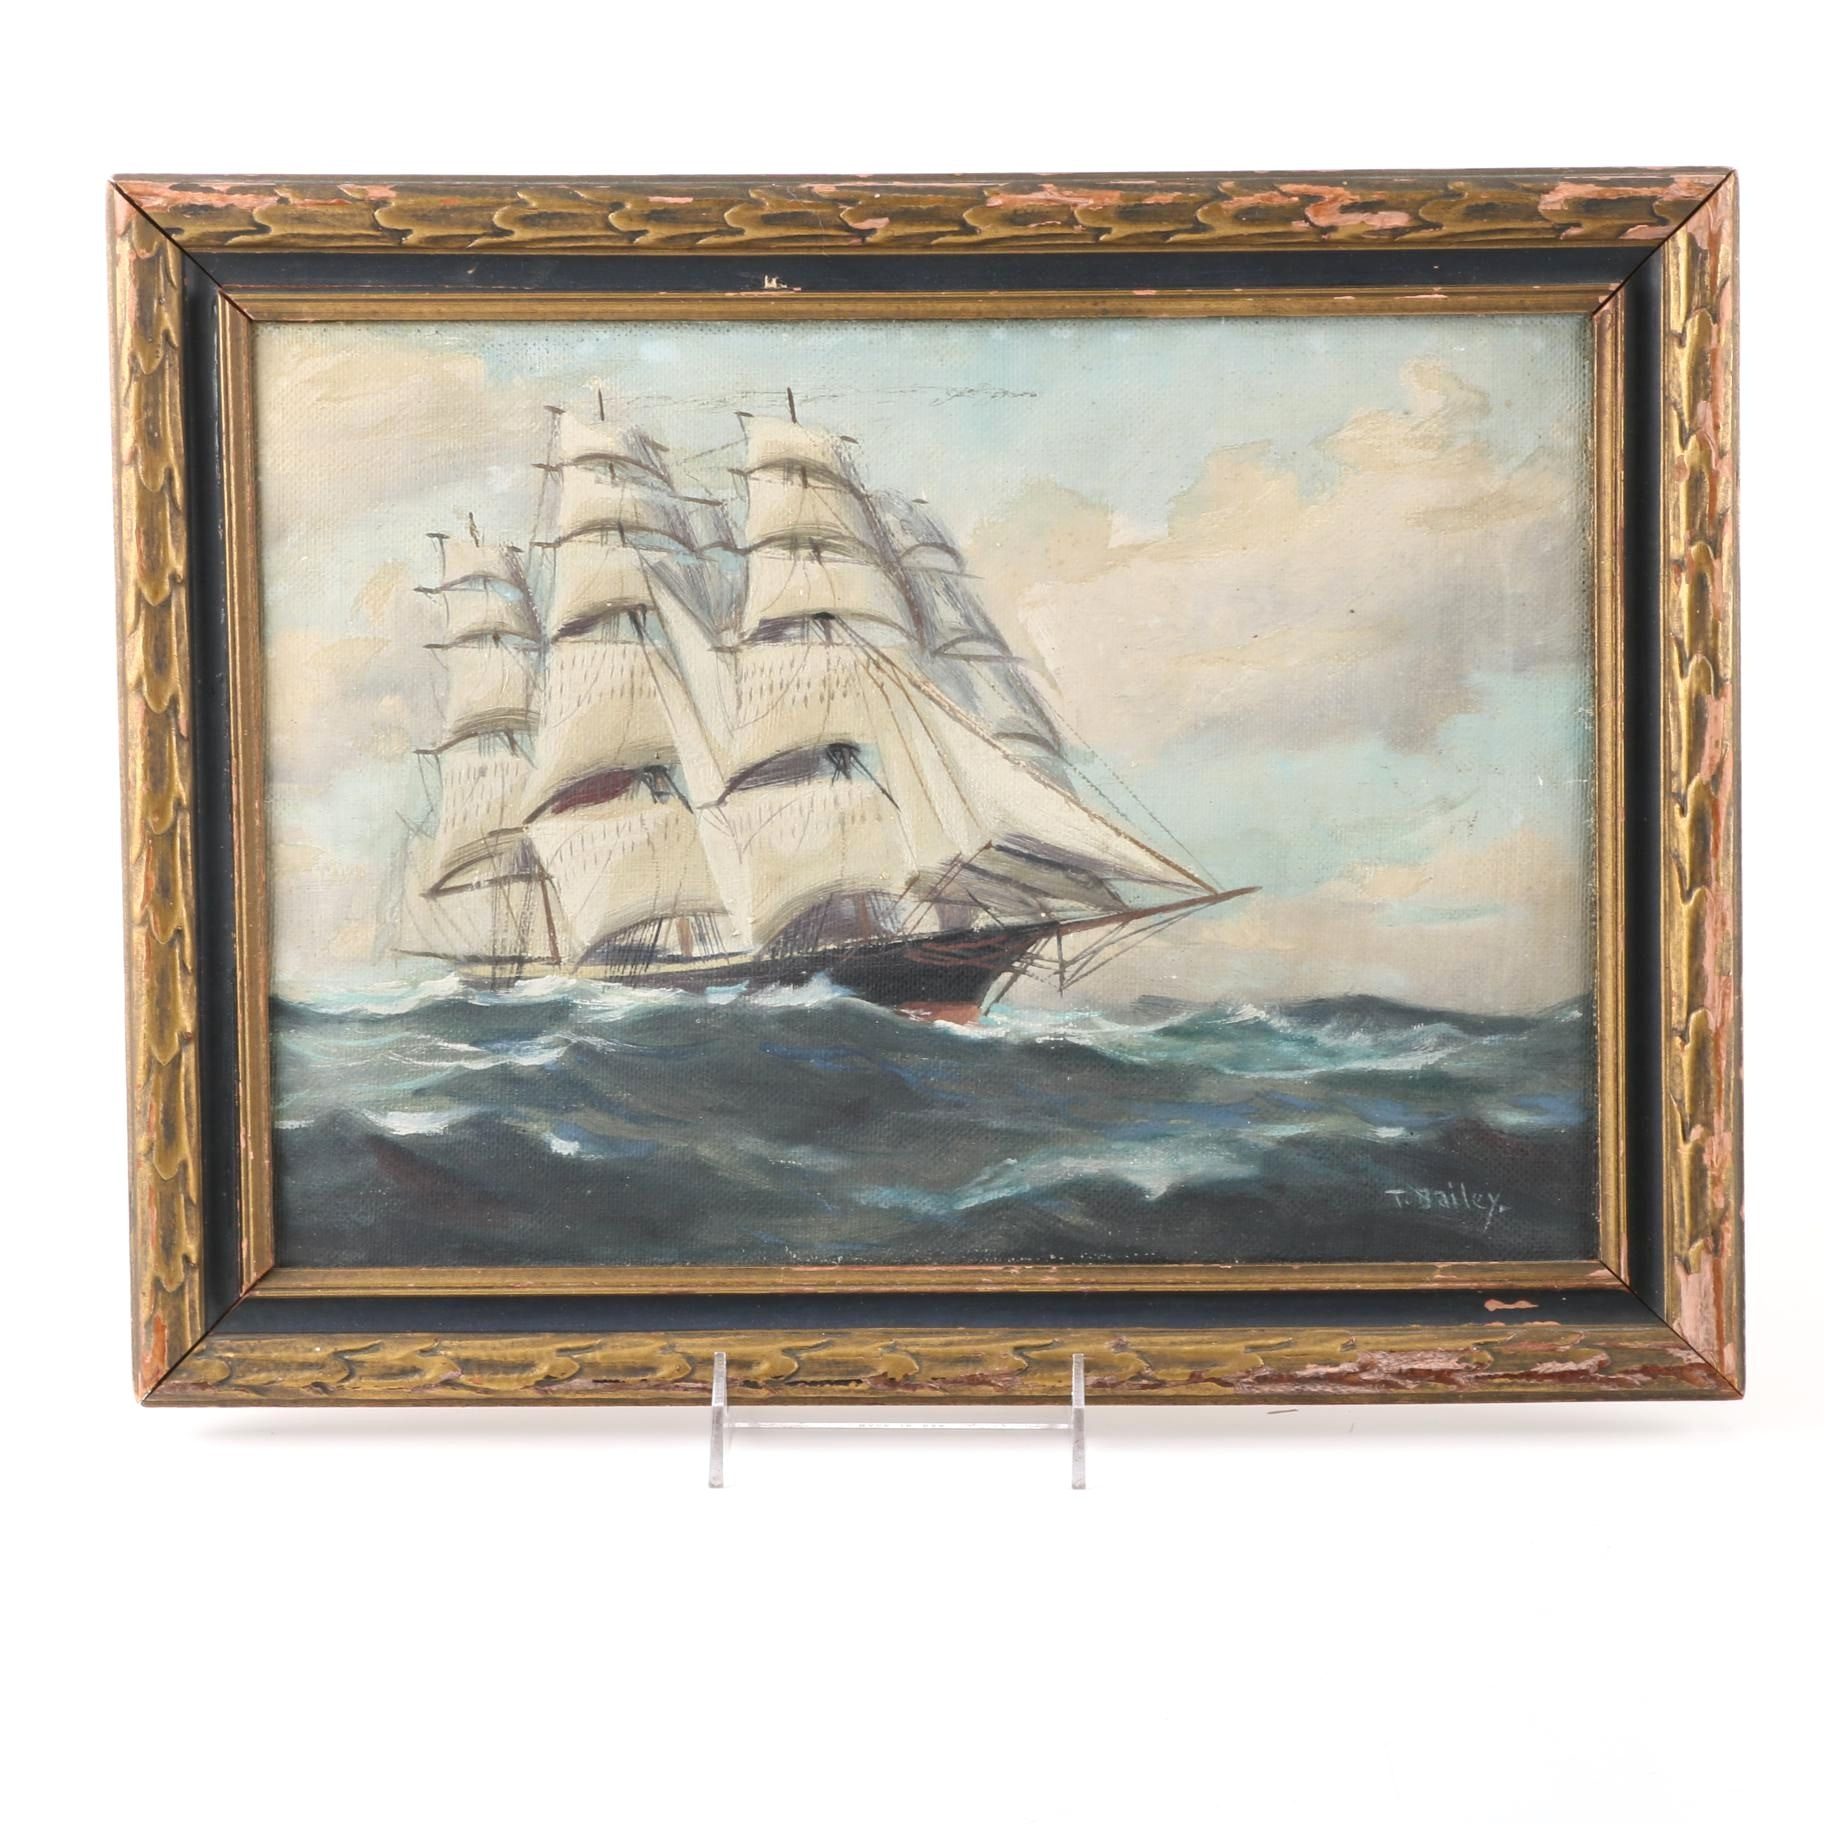 T. Bailey Oil on Canvas Painting of a Clipper Ship